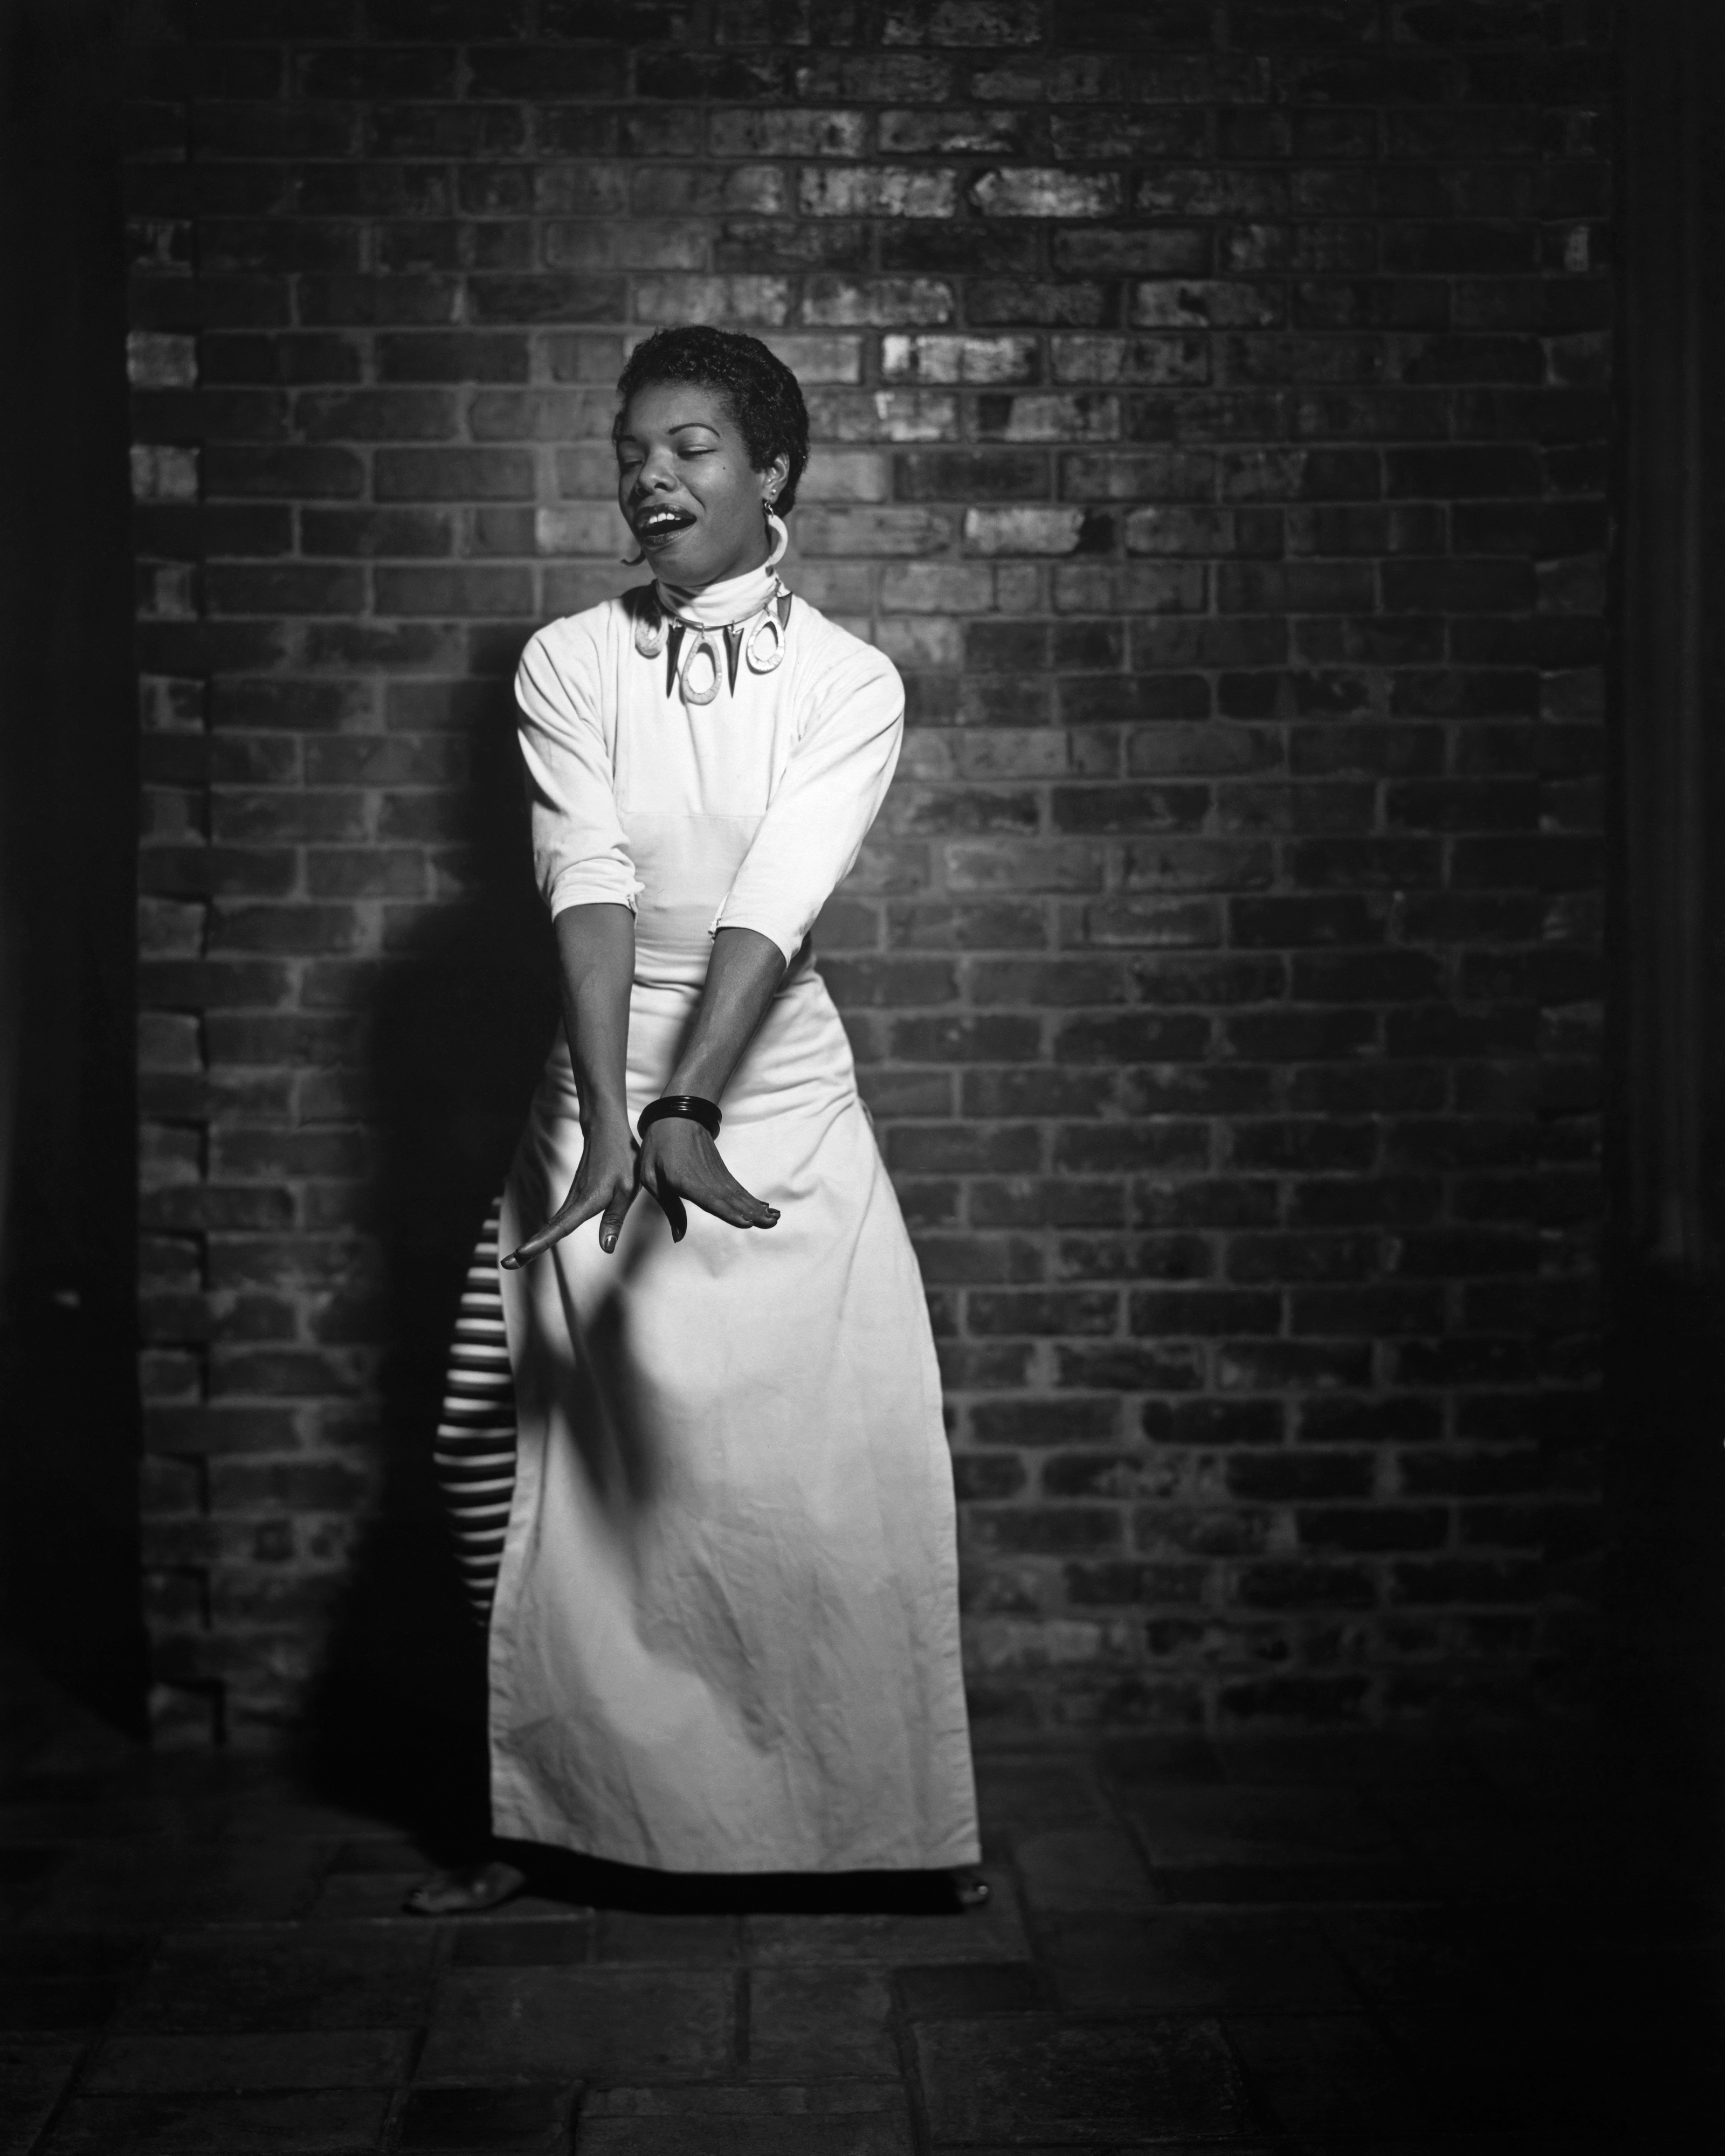 Photograph of Maya Angelou.